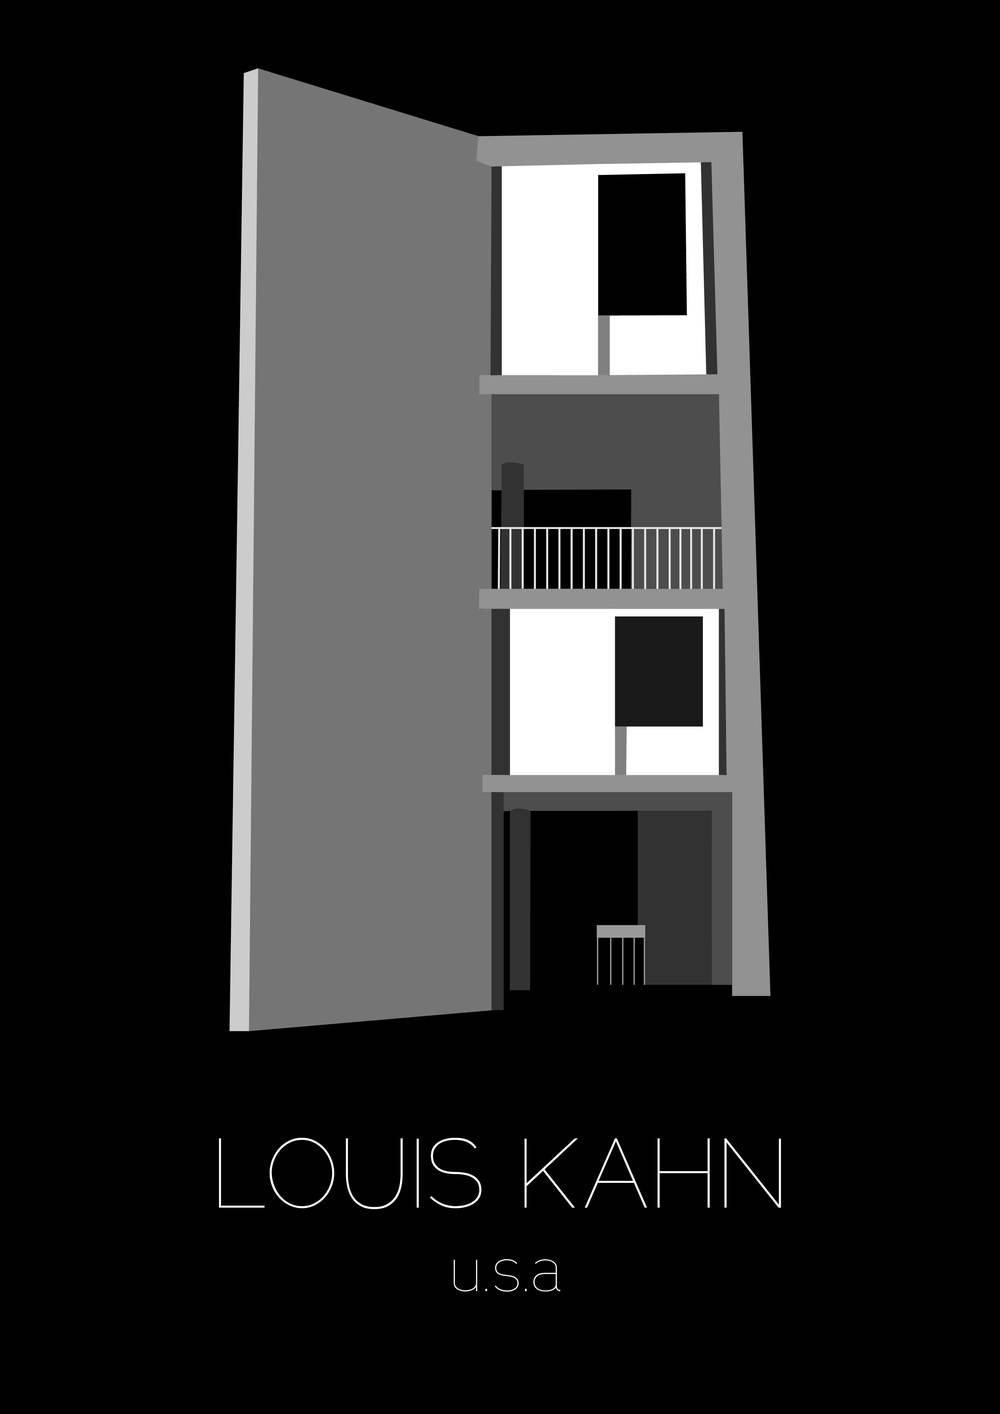 Poster d'architecture, Louis Kahn - www.marionchibrard.com   please do not remove images credits